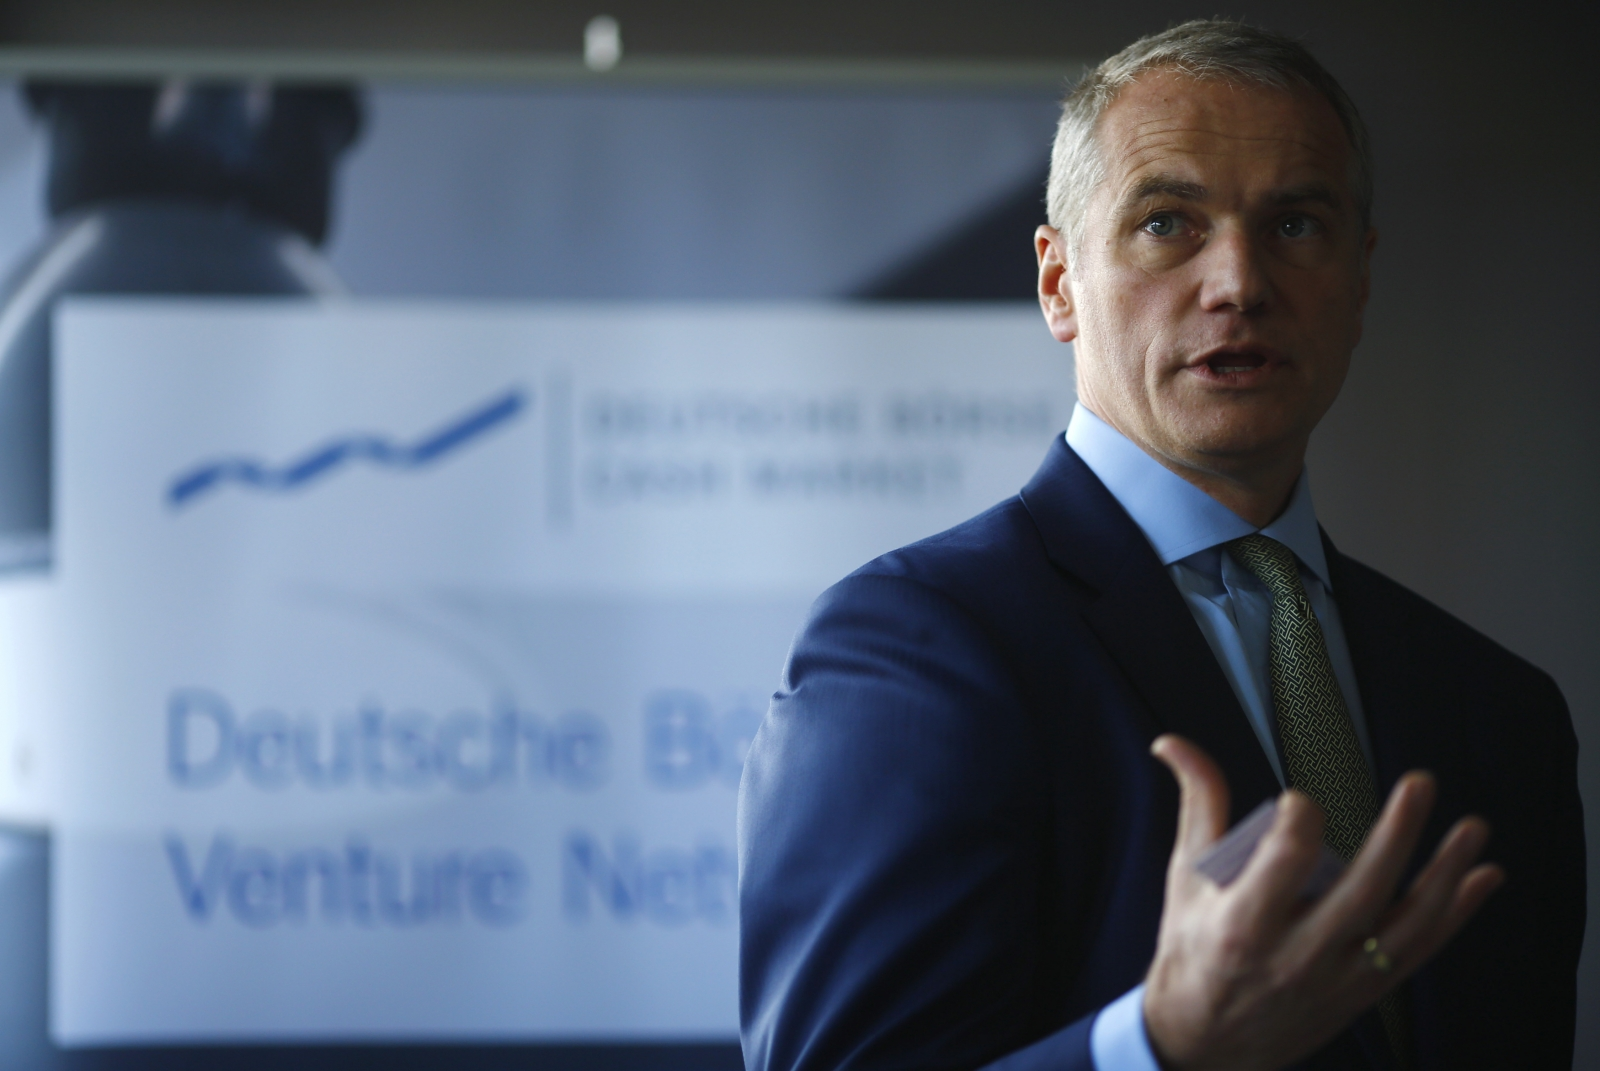 Deutsche Boerse chief executive in insider trading probe